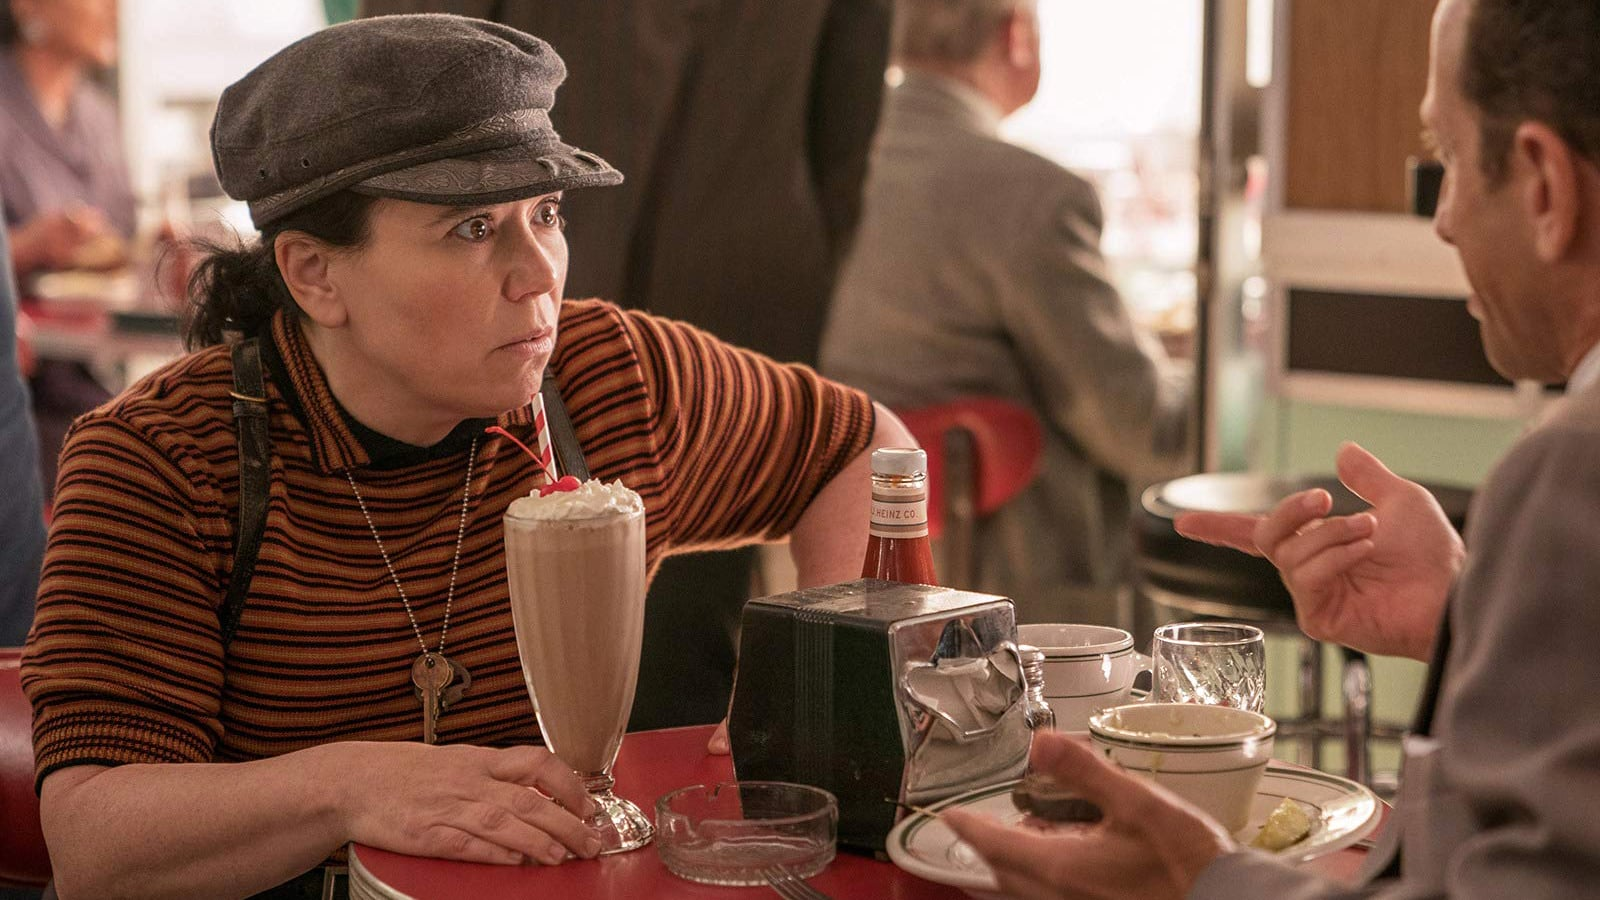 """Alex Borstein as Susie Myerson in """"The Marvelous Mrs. Maisel"""" (Promotional still)"""